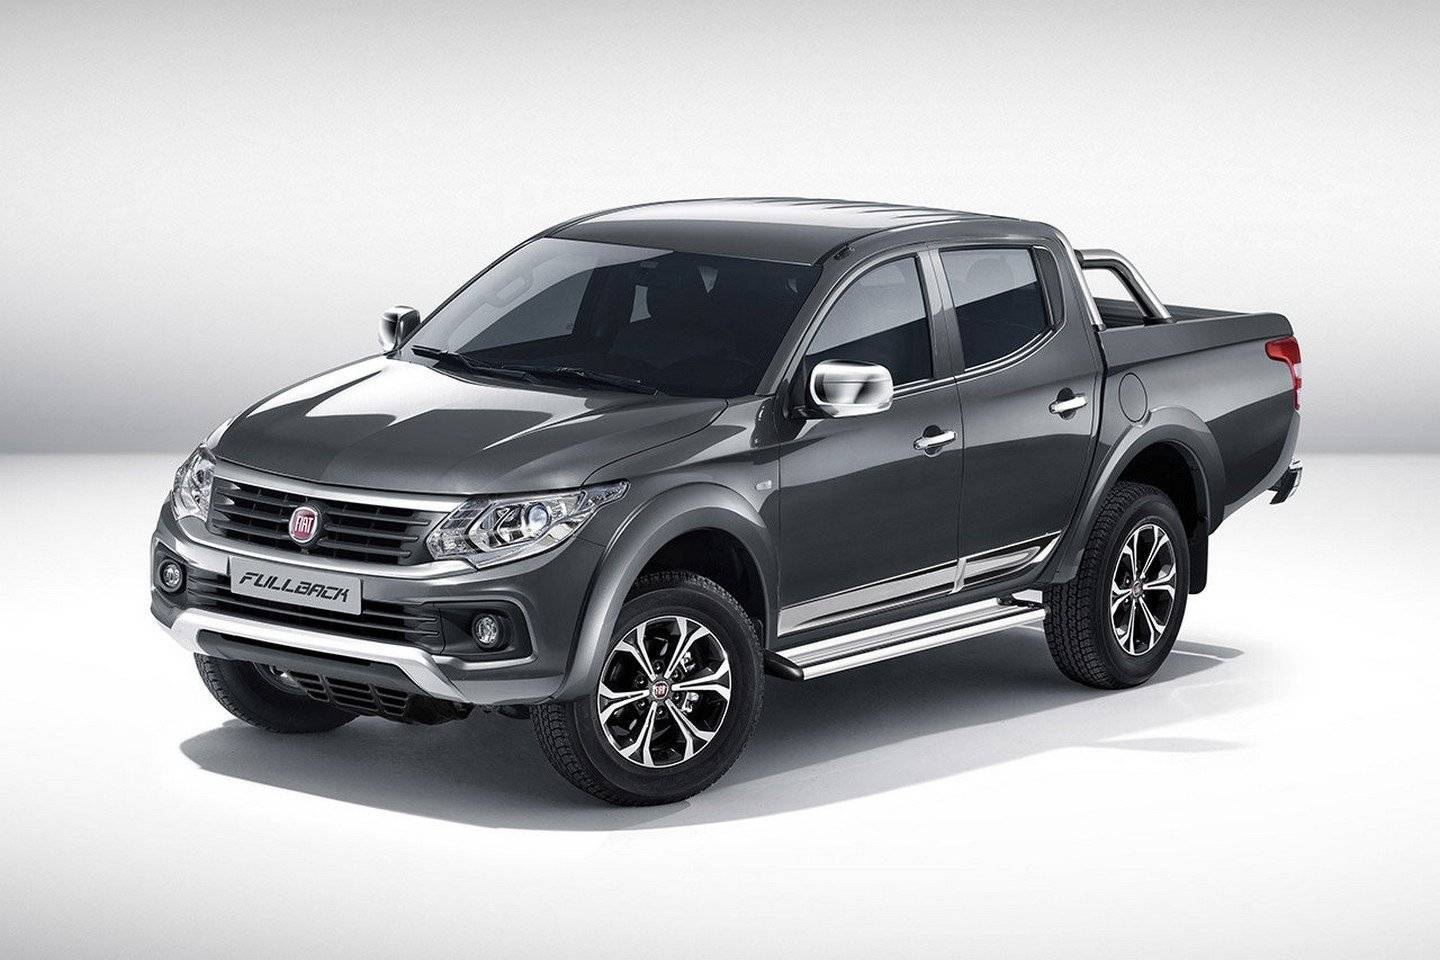 fiat fullback italiaanse pickup met japans dna autonieuws. Black Bedroom Furniture Sets. Home Design Ideas